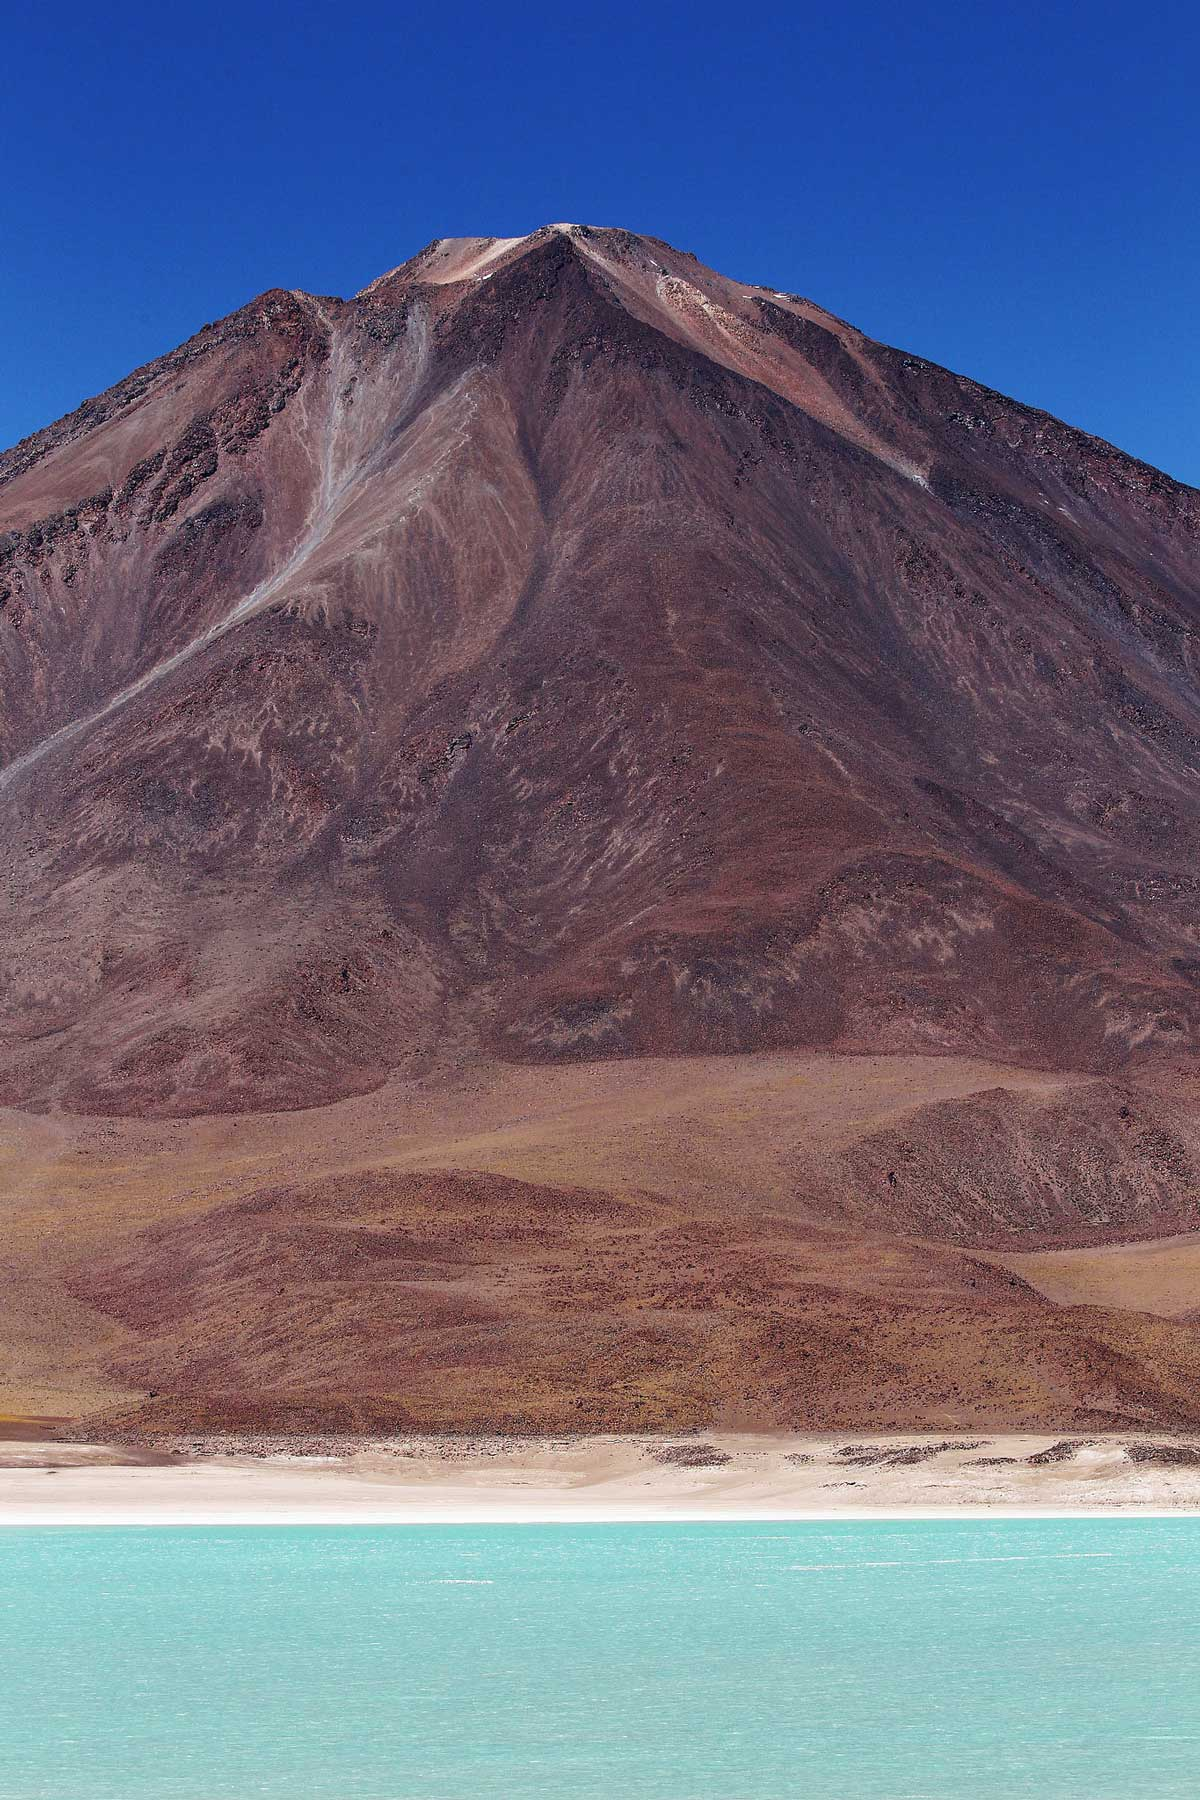 The other-worldly landscape of Bolivia's Altiplano is ringed in vast, desolate plains stained ochre and rust-brown, and speckled with turquoise lagoons that turn a brilliant emerald green when the wind blows